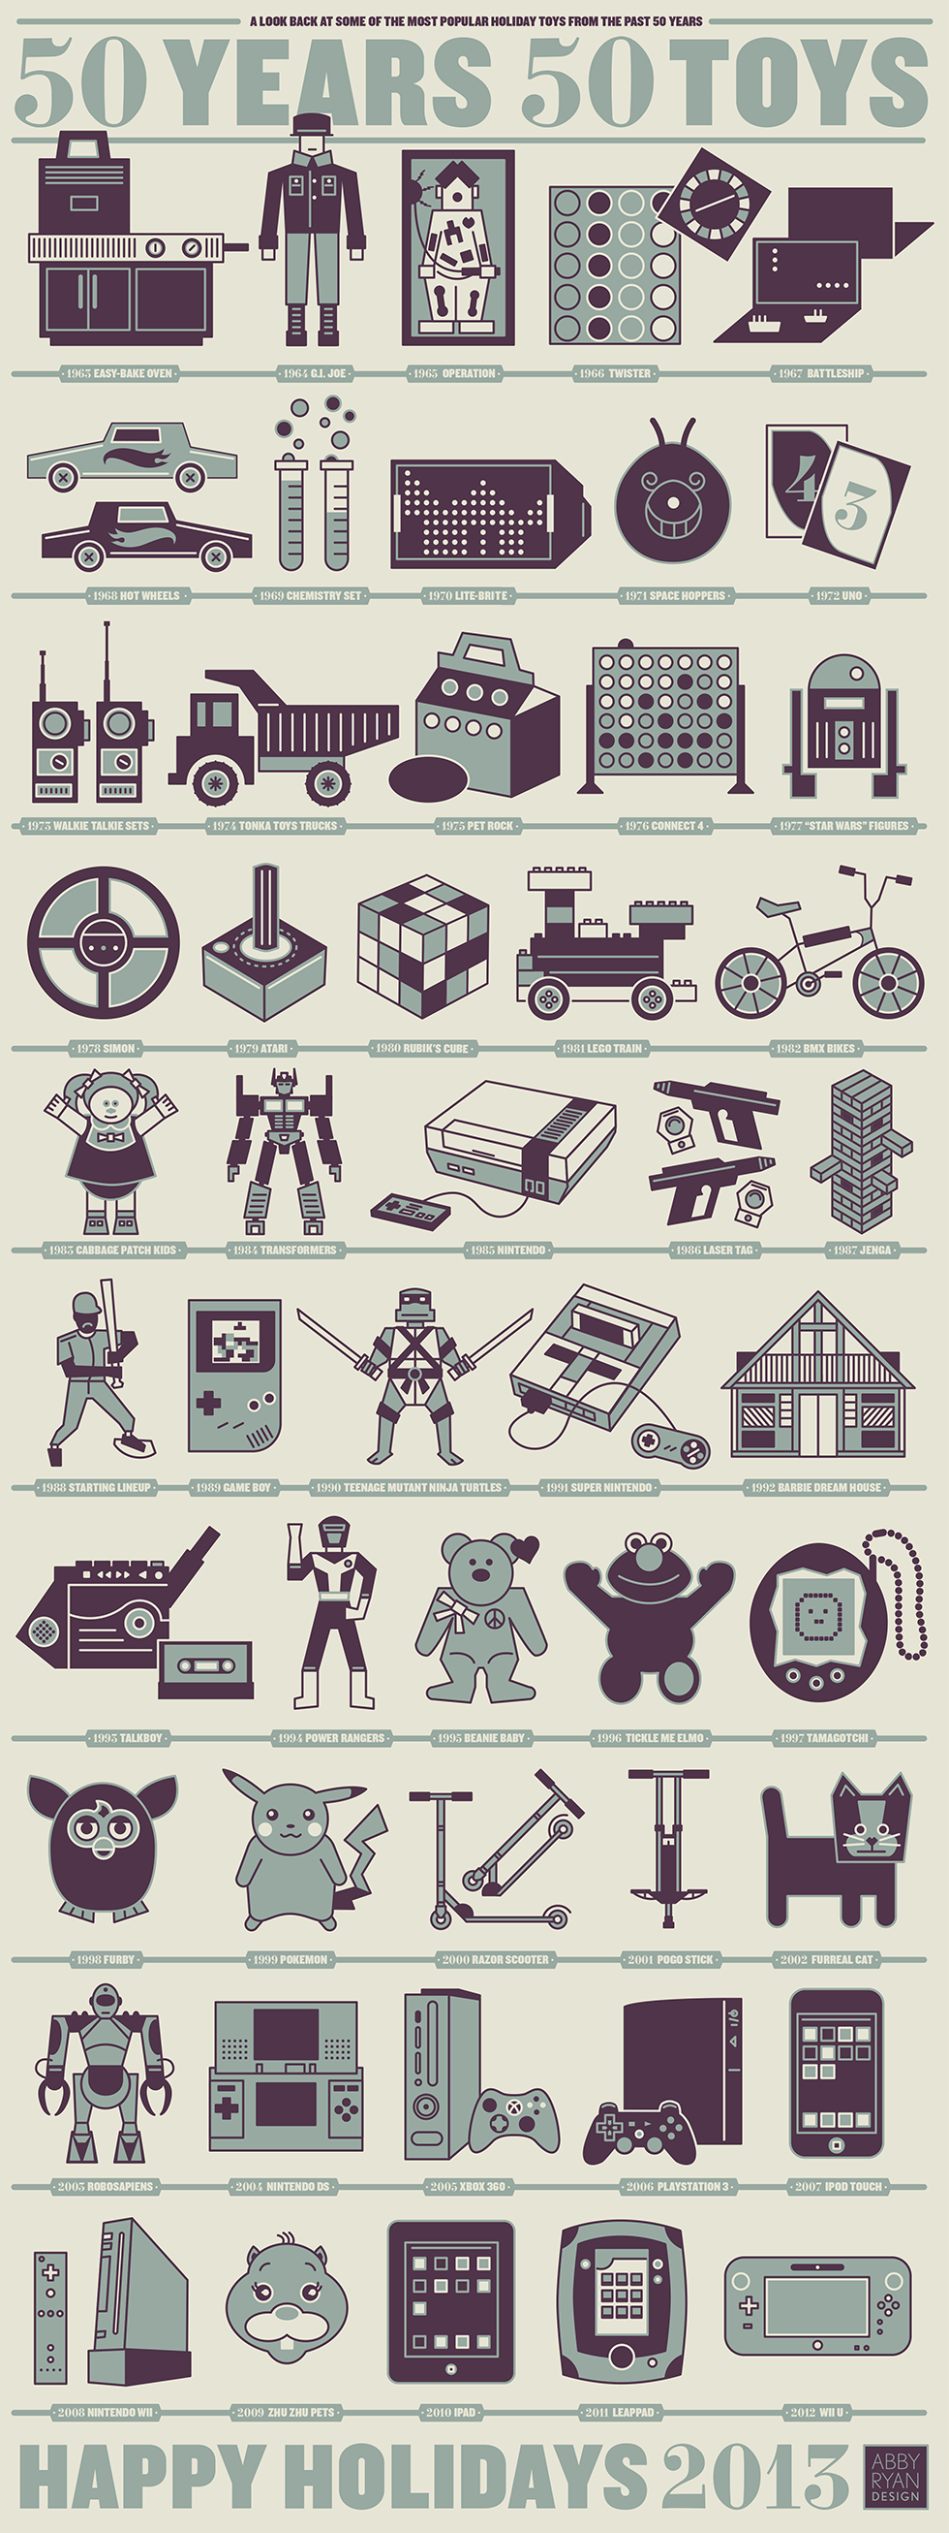 50 years 50 toys by Abby Ryan Design